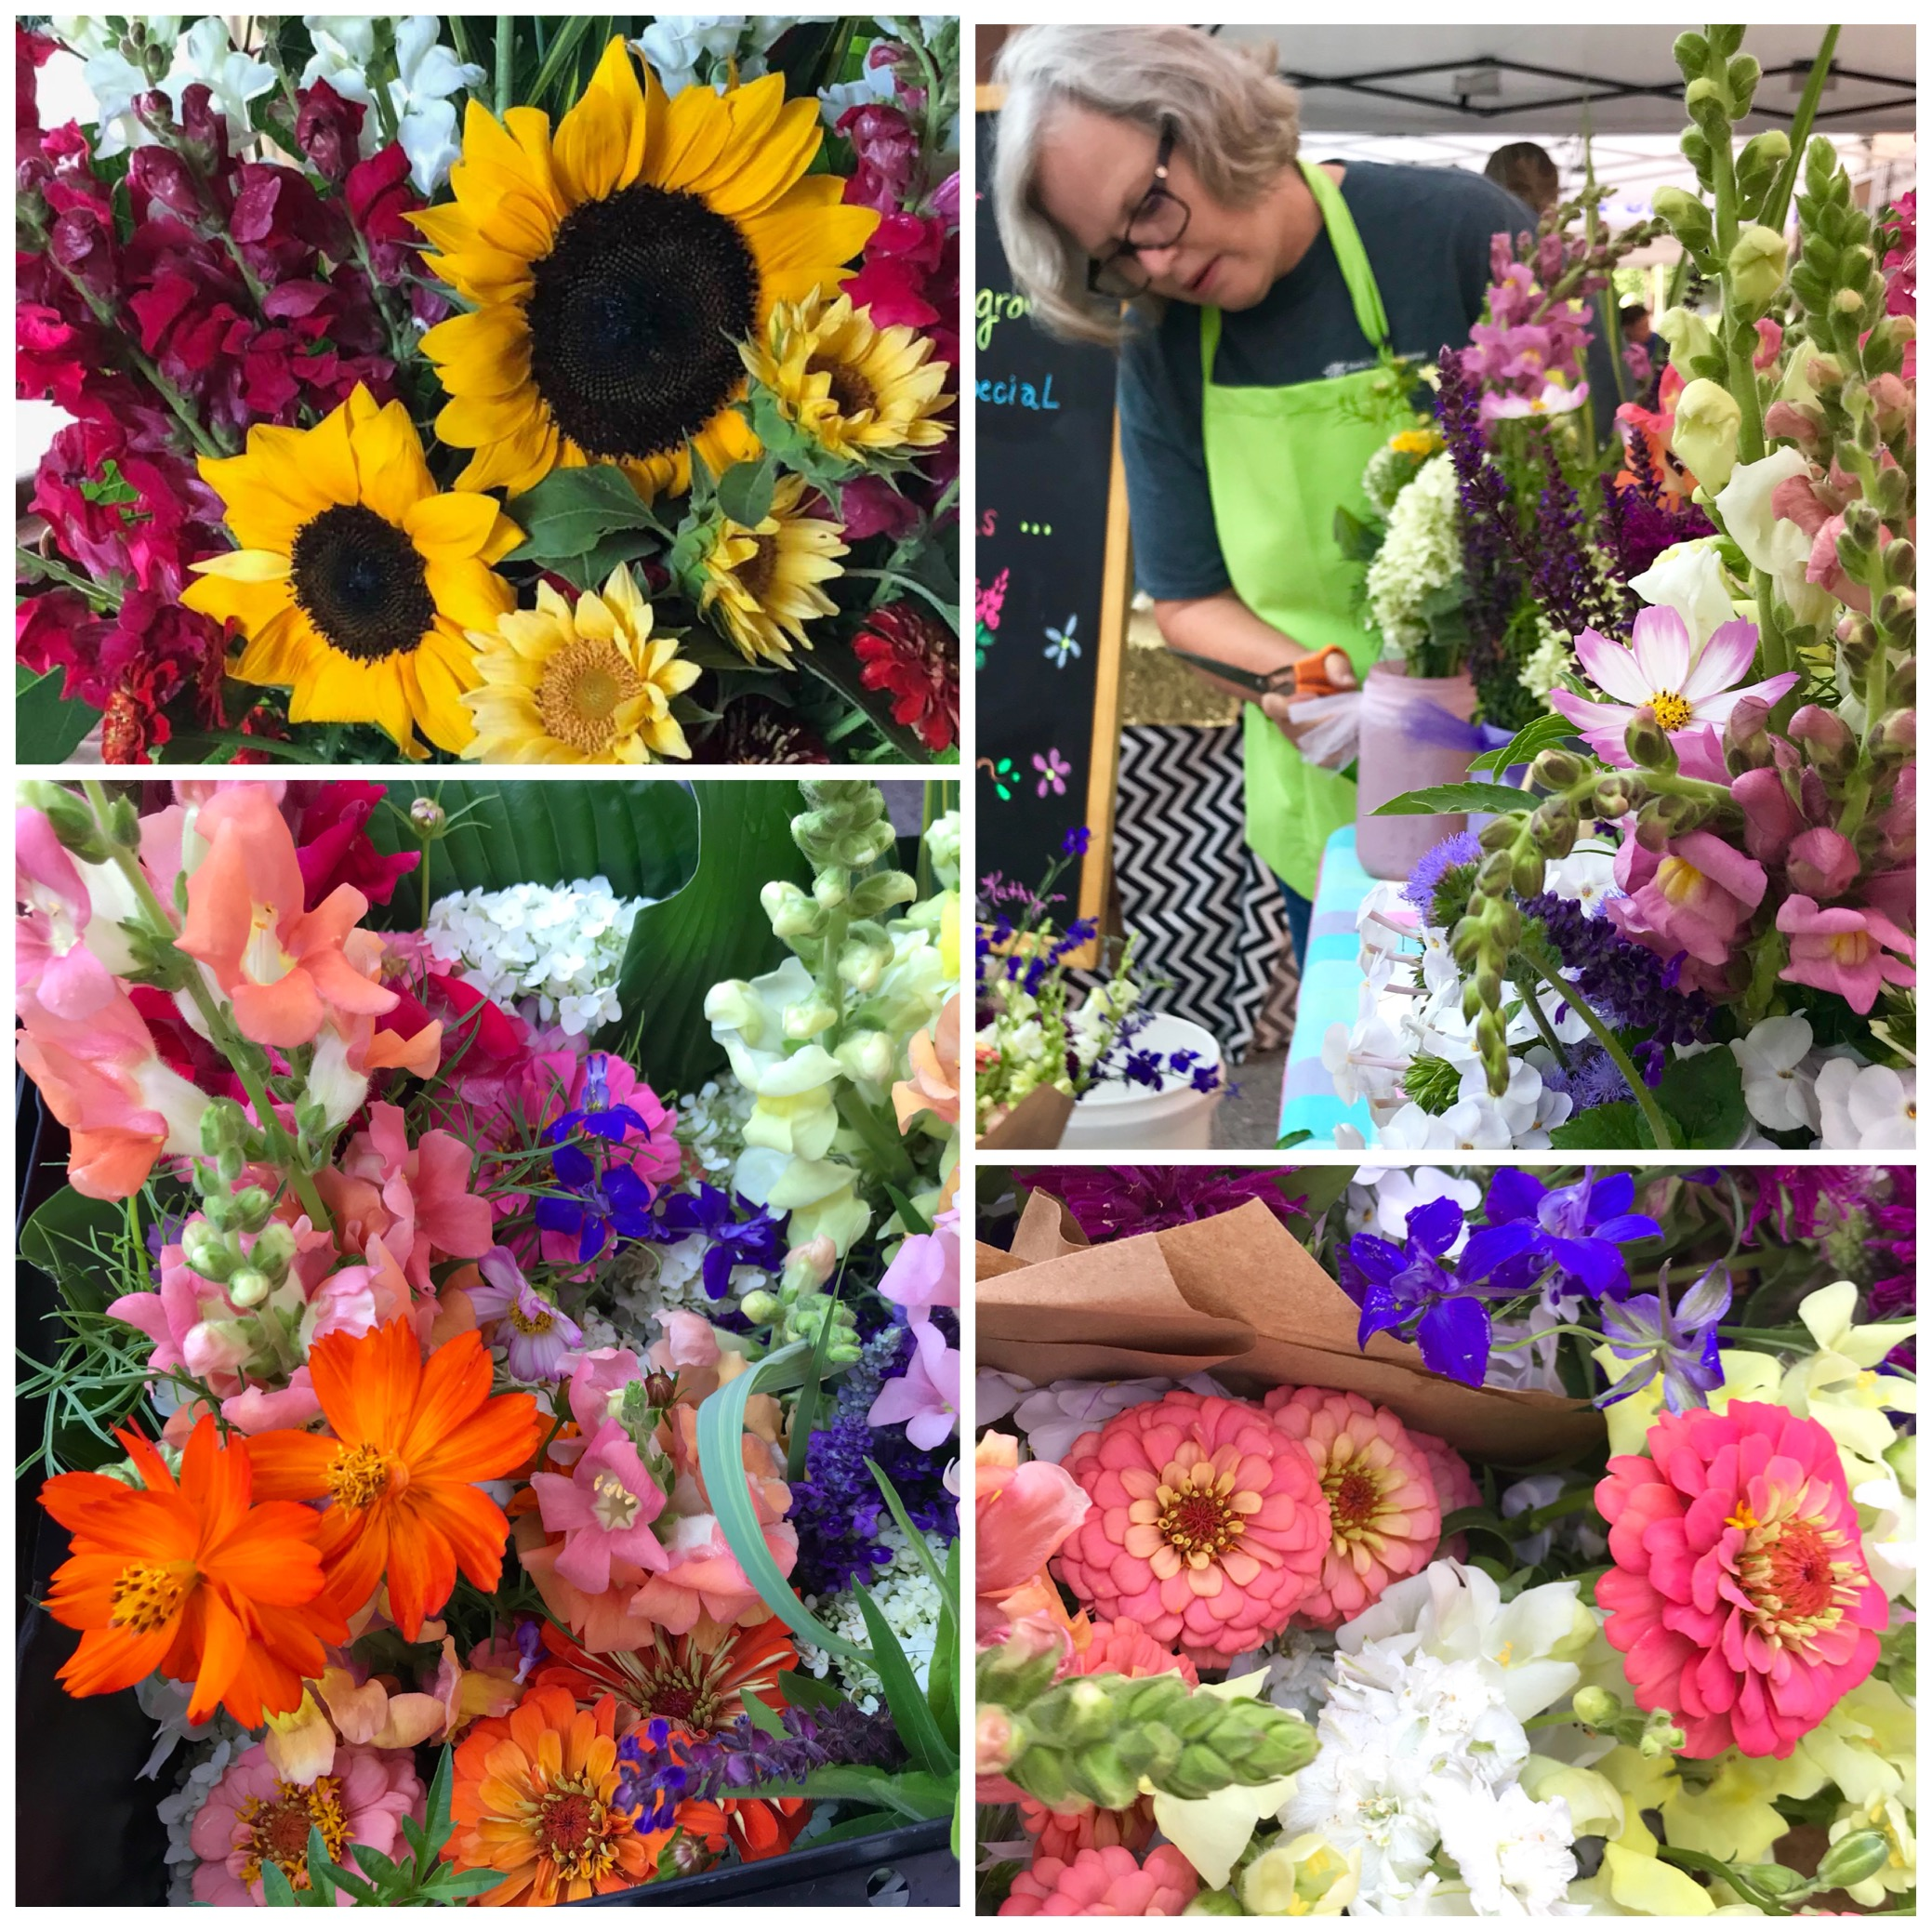 About - Hi, I'm Kathleen. Welcome to Flowers for You! Learn about my story and why I do what I do.